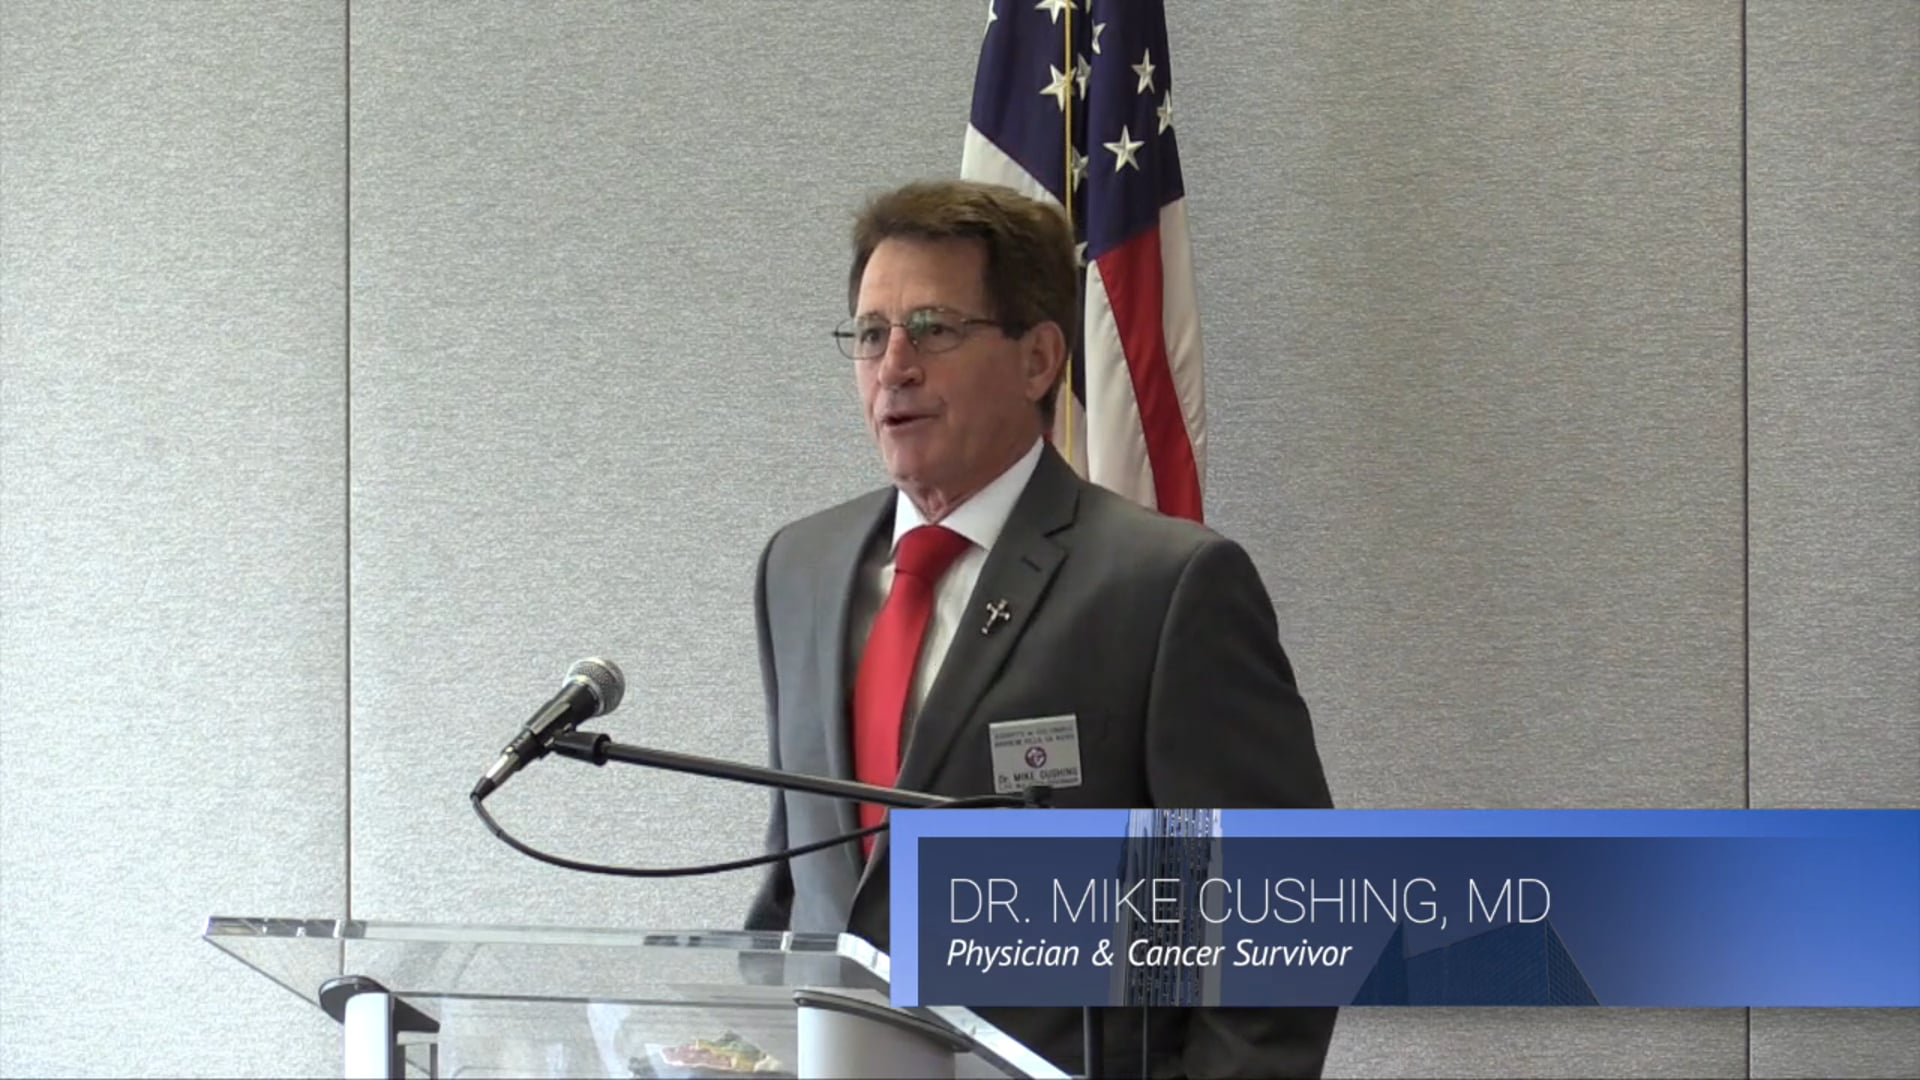 """Dr. Mike Cushing: """"Comfort the Afflicted: An Alternative to Physician-Assisted Suicide"""""""